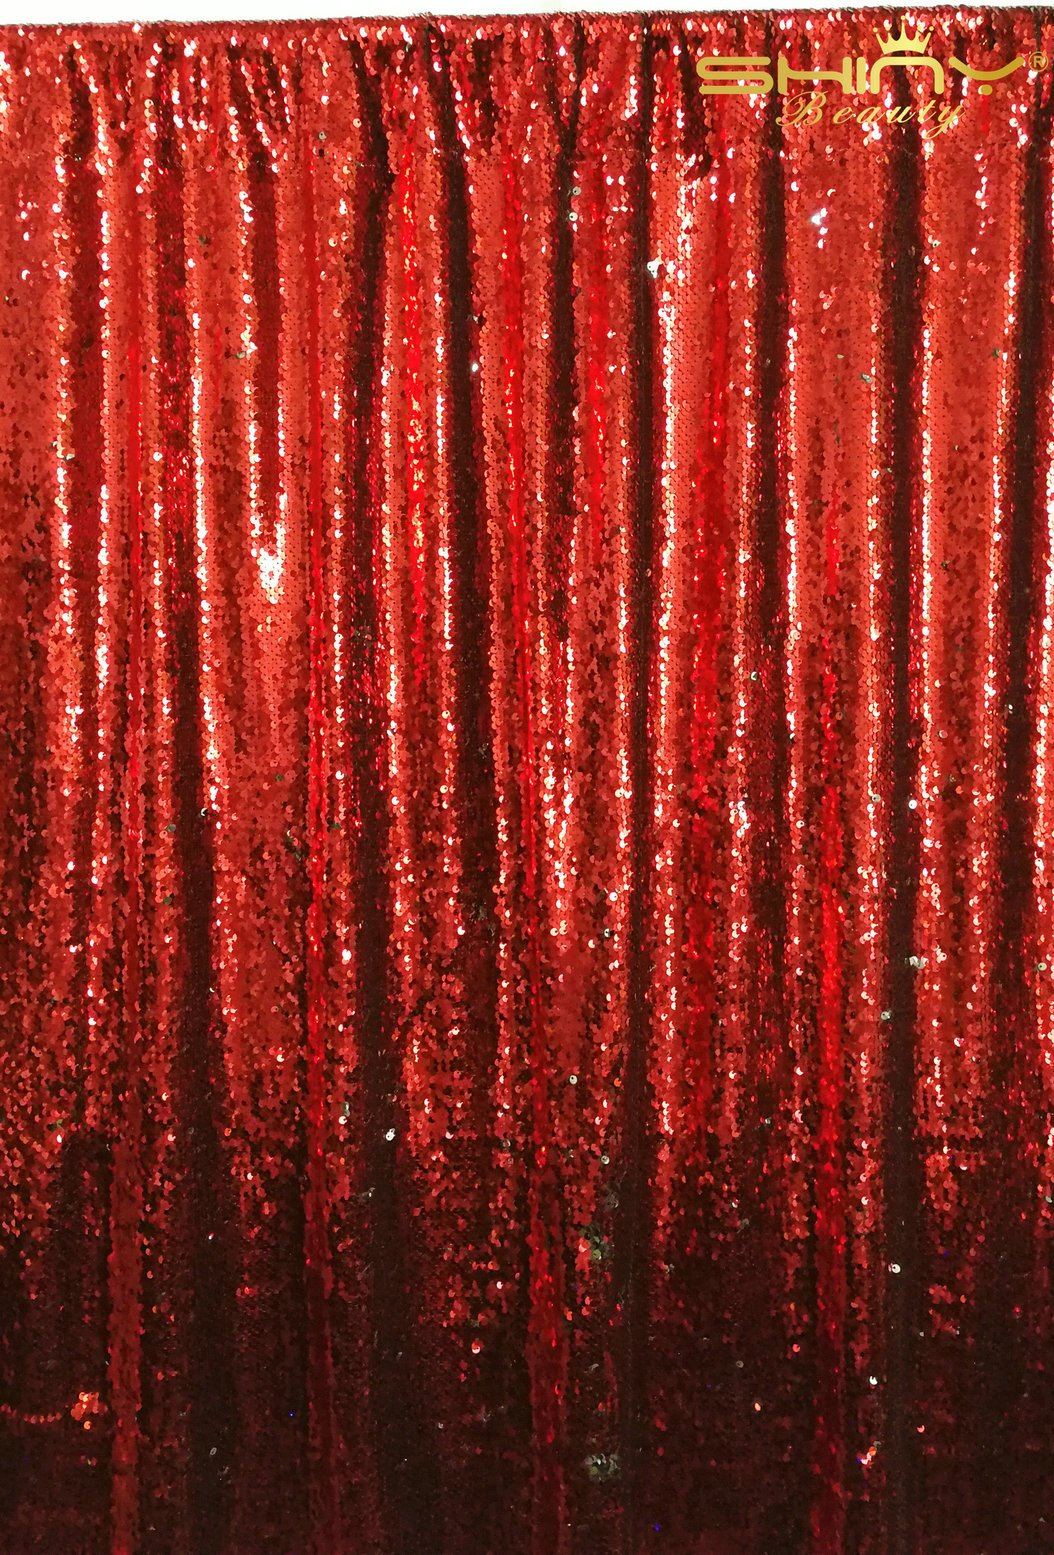 ShinyBeauty Mermaid-Sequin Curtain Backdrop-Red&Silver-10FTx10FT,Reversible Sequin Fabirc Photography Backdrops For Photo/Wedding/Party/Event/Prom/Birthday by ShinyBeauty